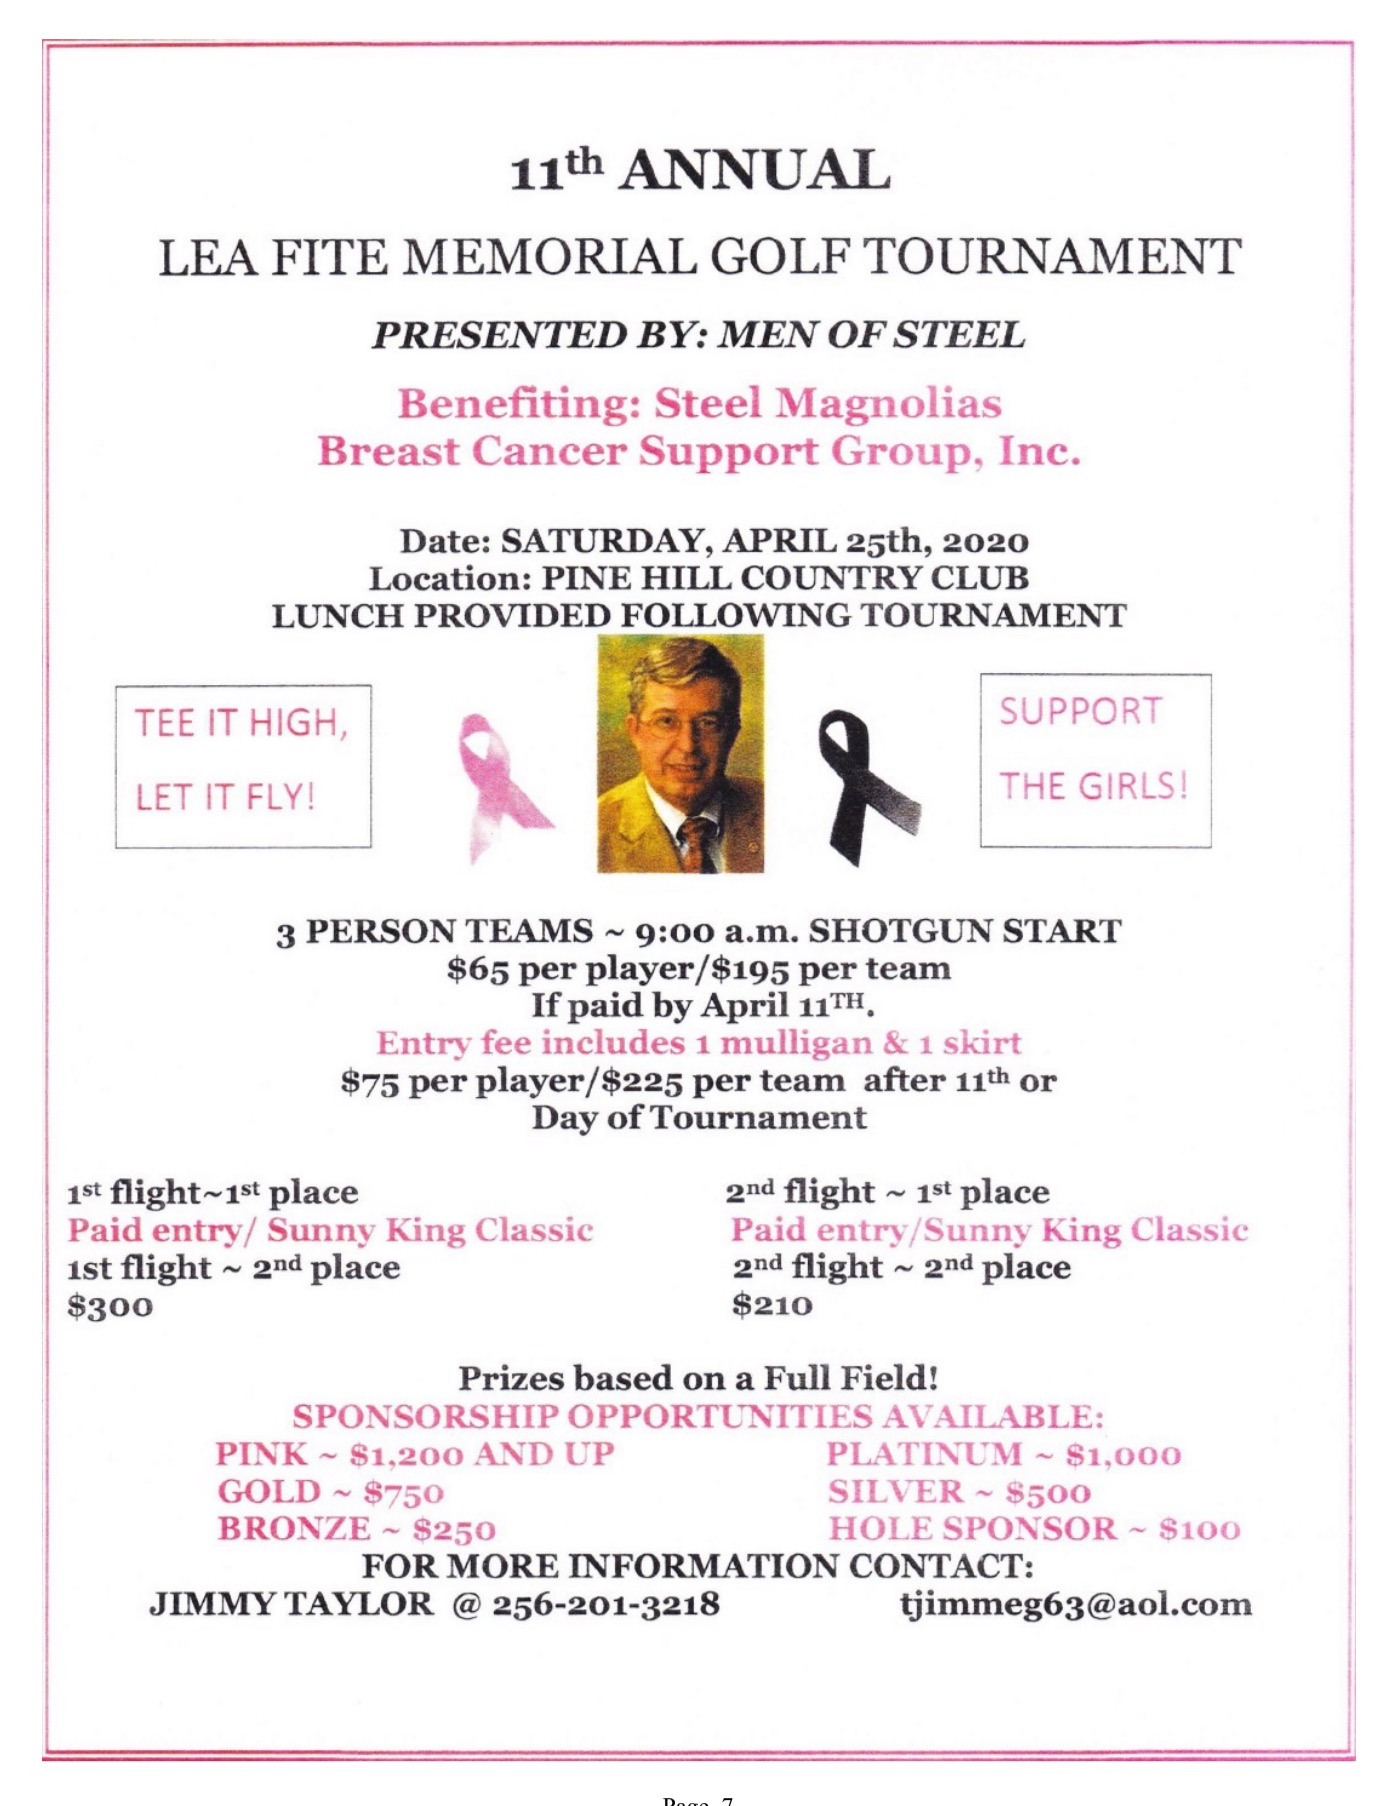 11th Annual Lea Fite Memorial Golf Tournament